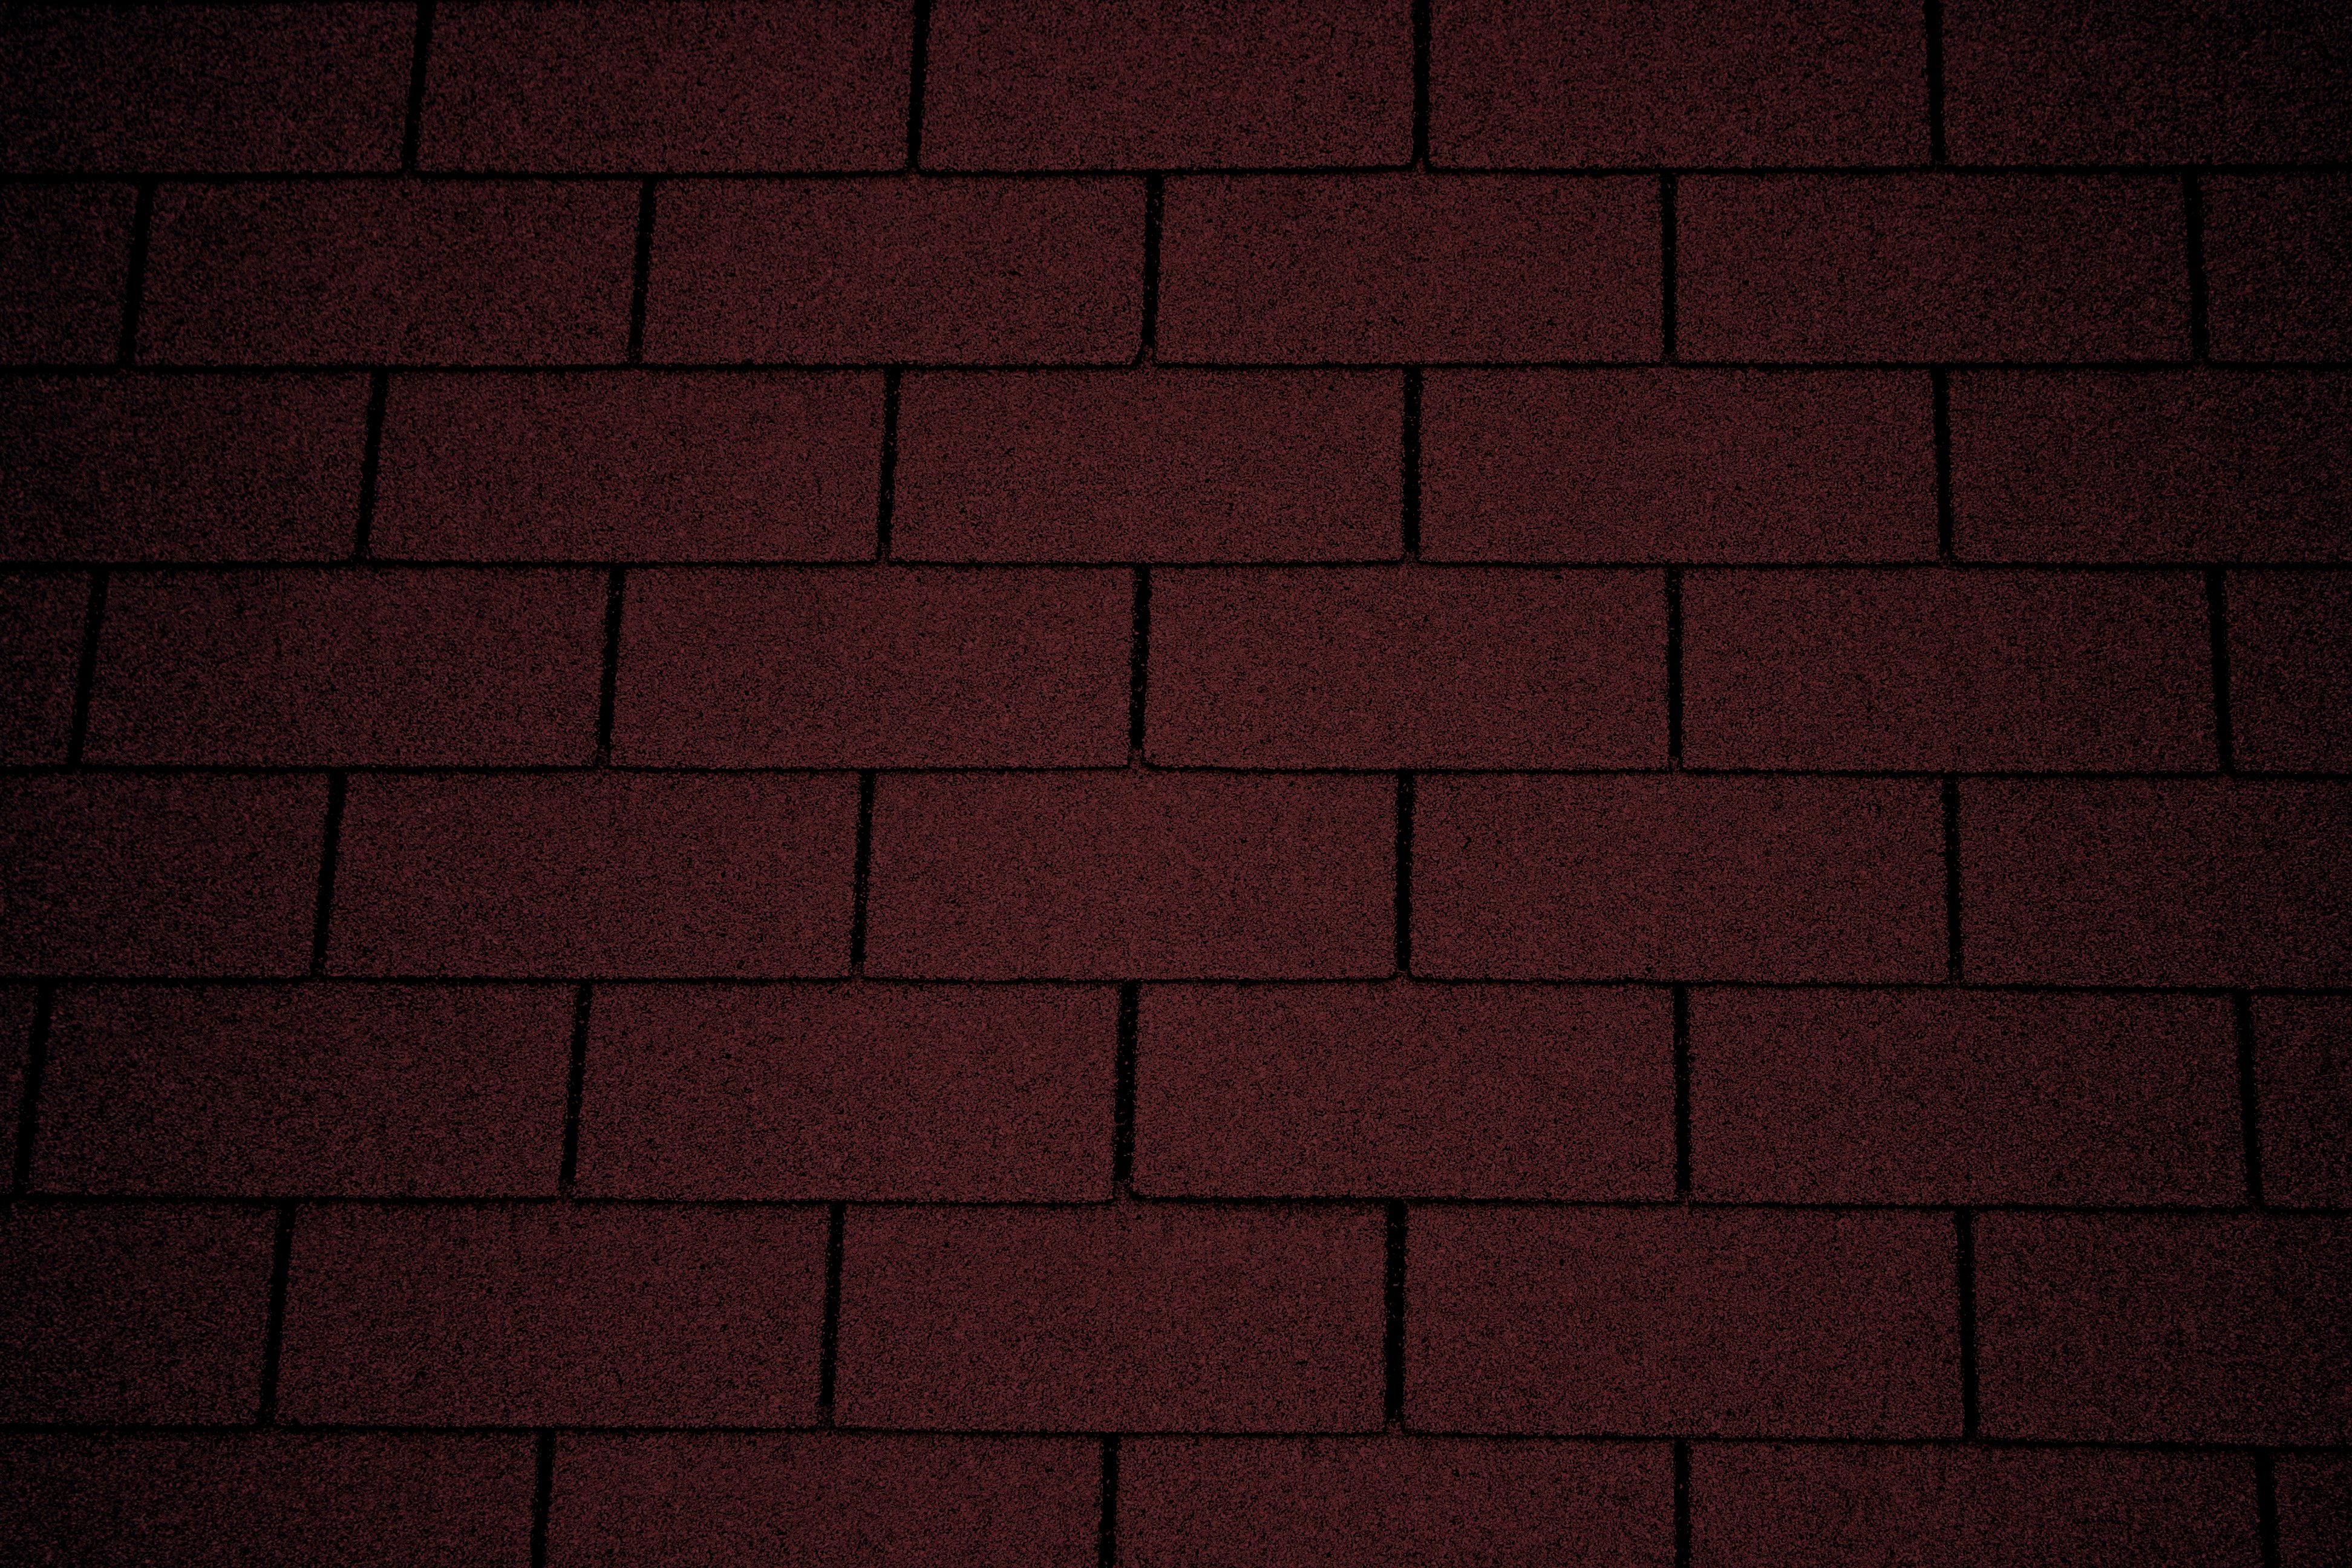 Dark blue wallpaper asphalt roof shingles texture dark blue wallpaper - Dark Red Asphalt Roof Shingles Texture